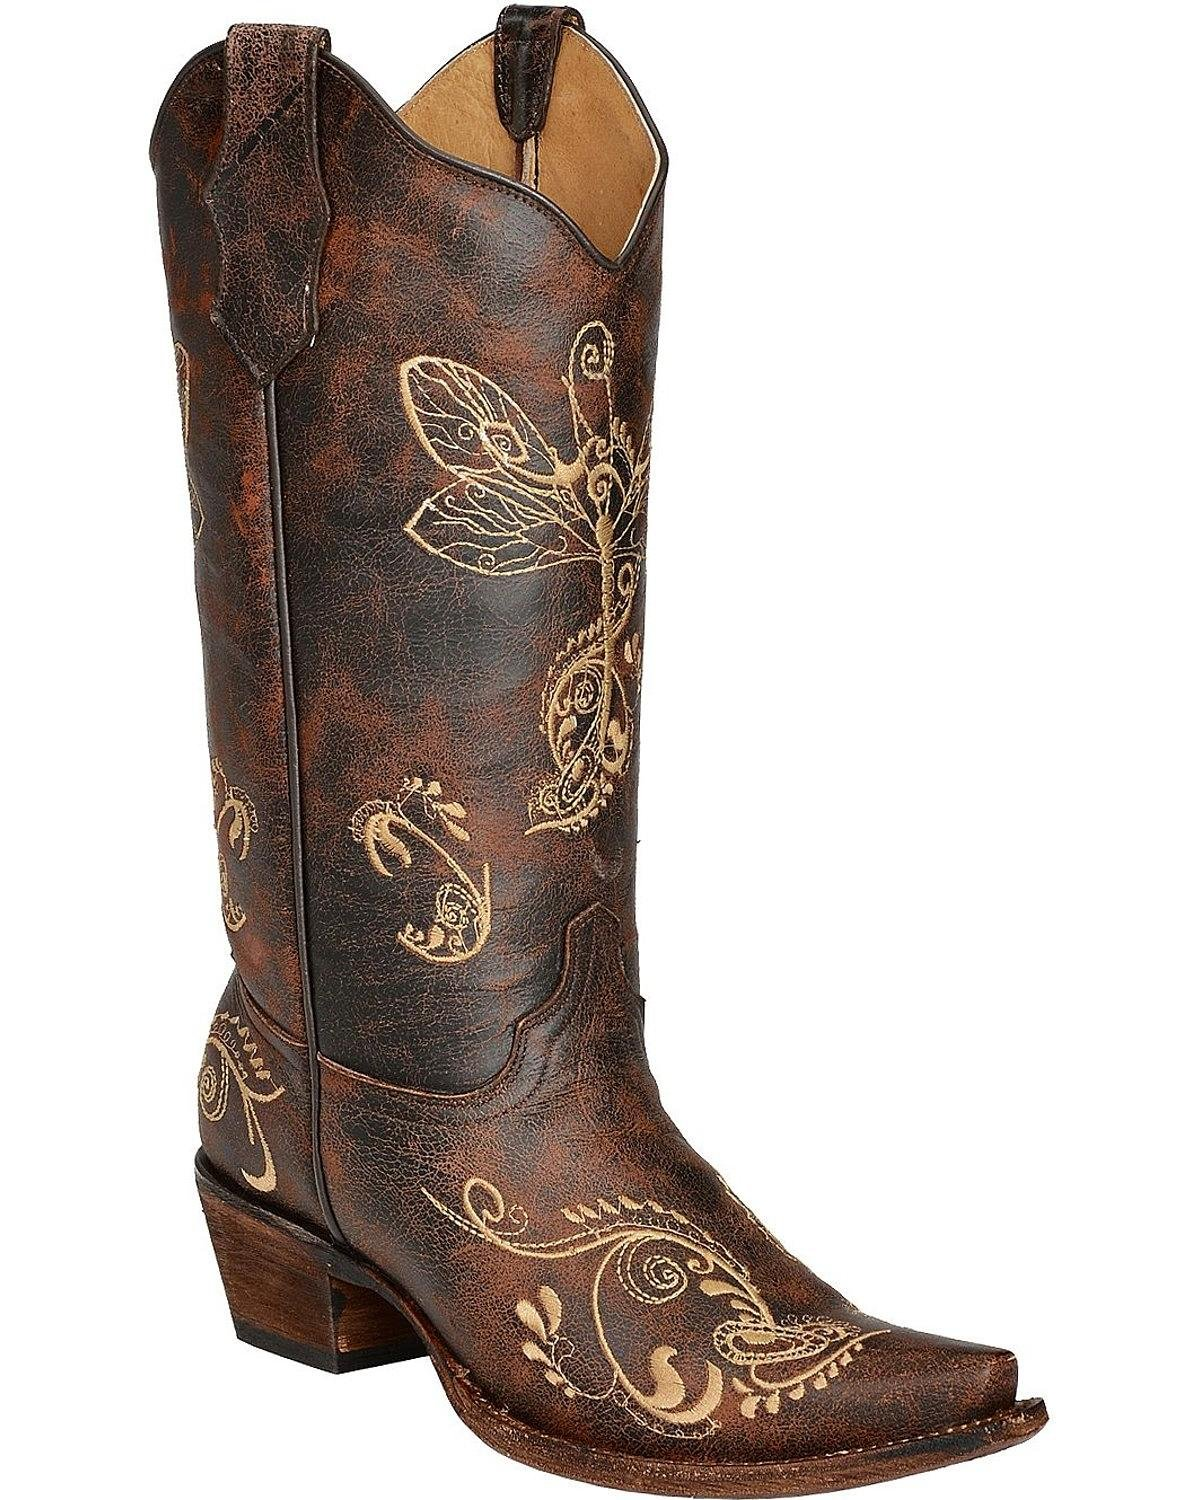 Circle G Womens Distressed Bone Dragonfly Embroidered Boot Snip Toe Brown 8.5 M